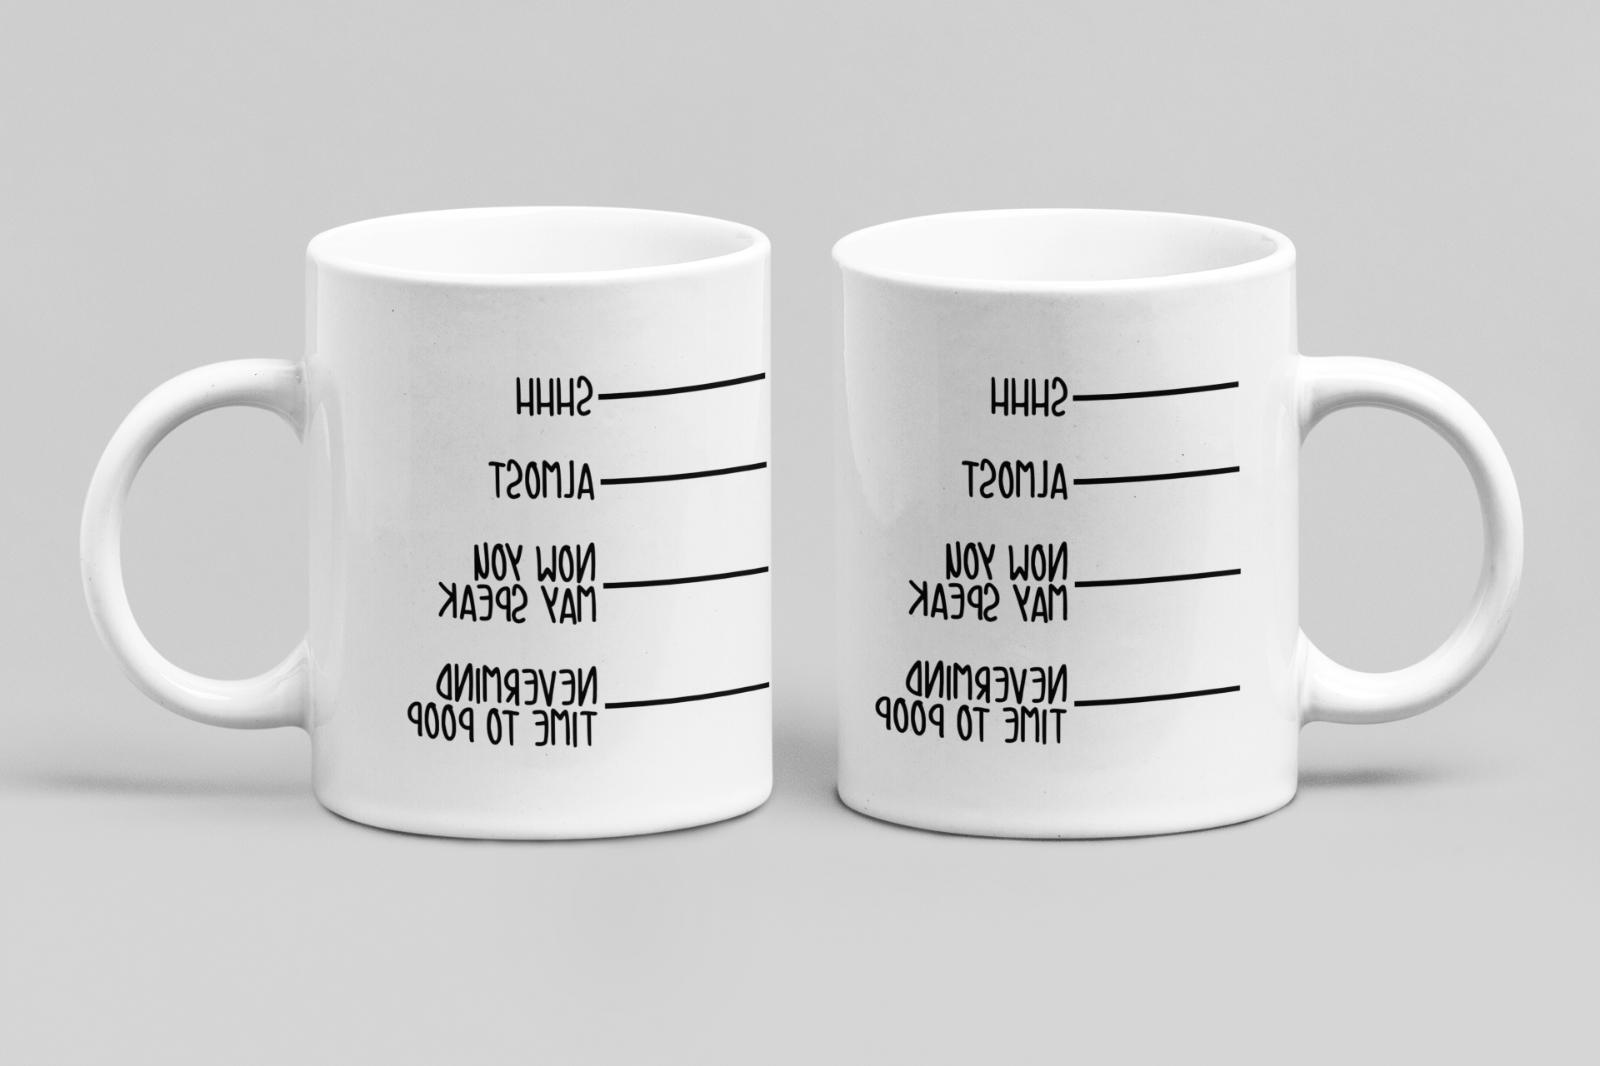 Shhh Almost May Have Go Funny 11 Mug